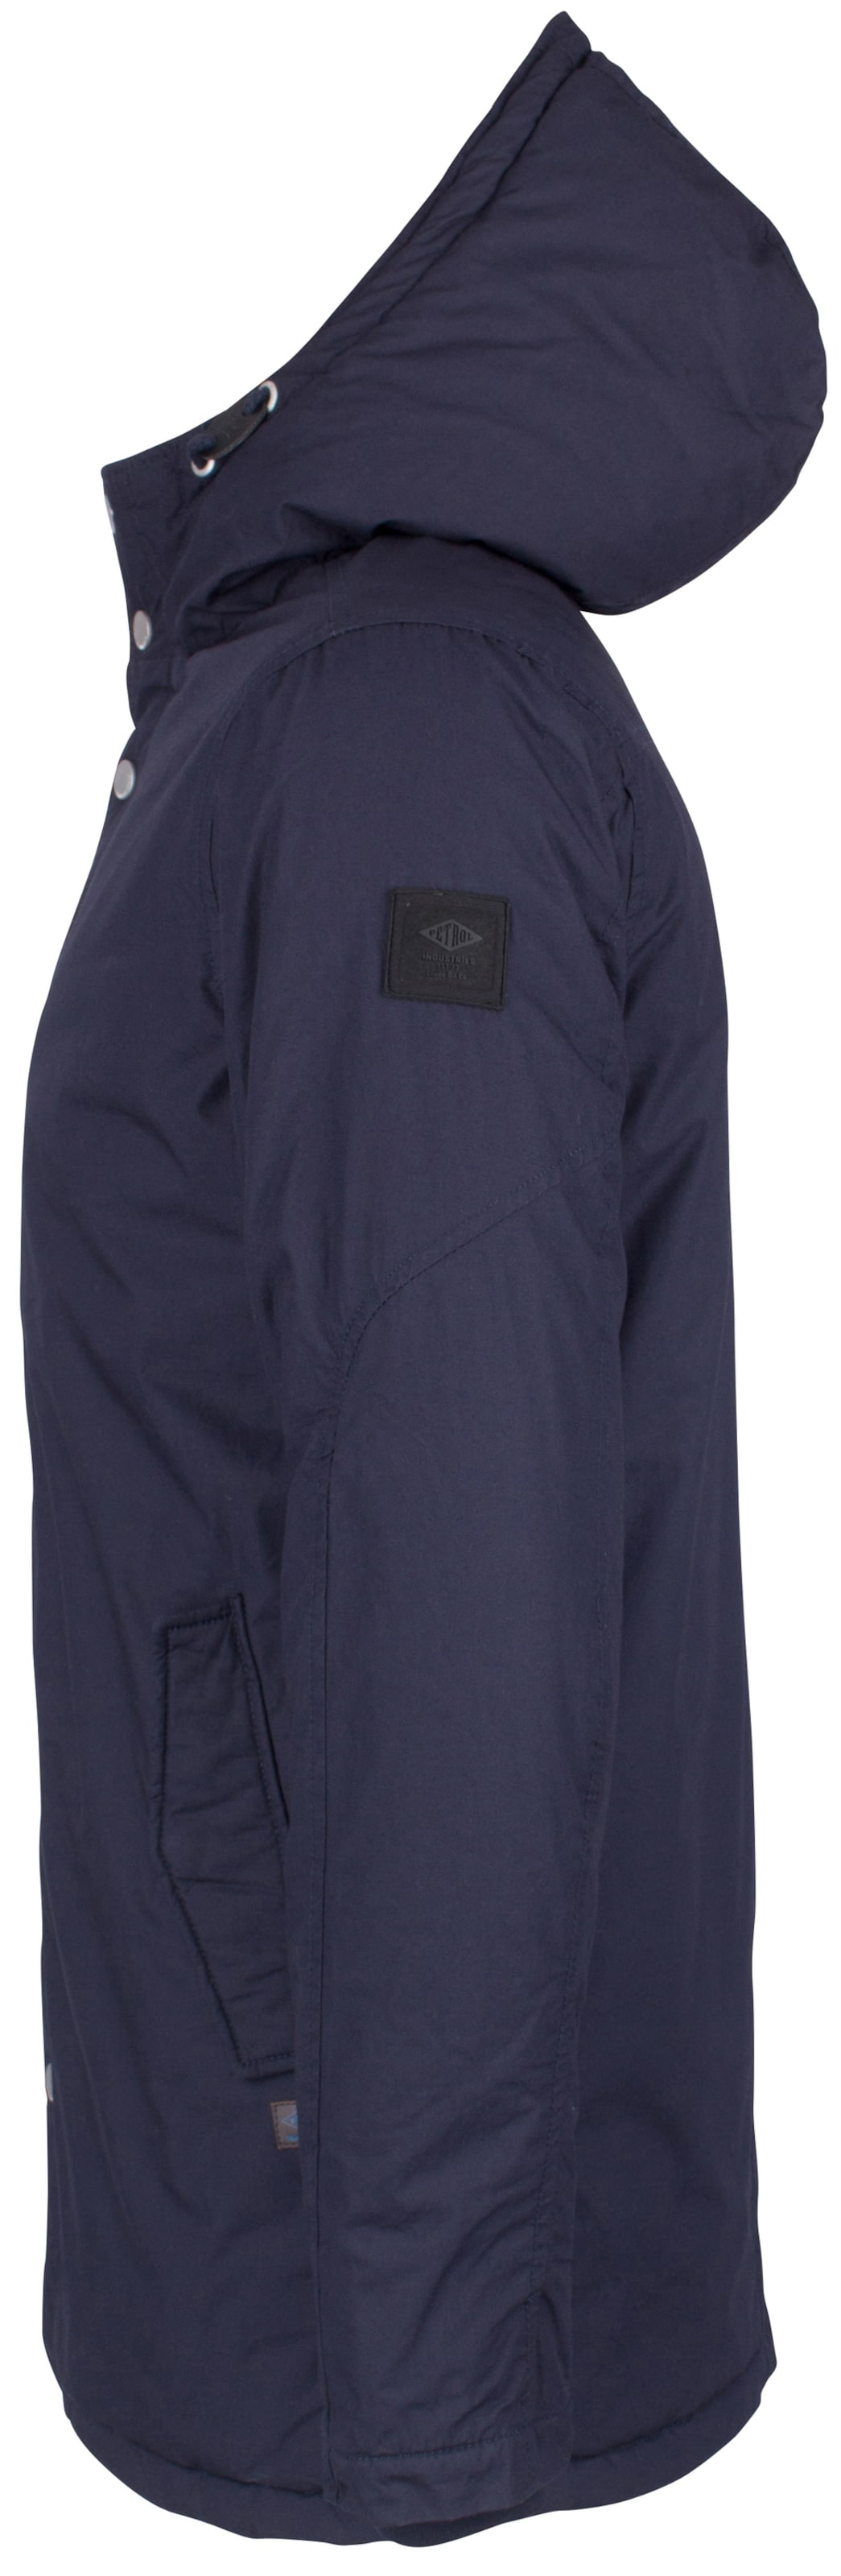 Jacke Petrol Jacke Industries In Blau Industries Petrol wPkuTlXZOi